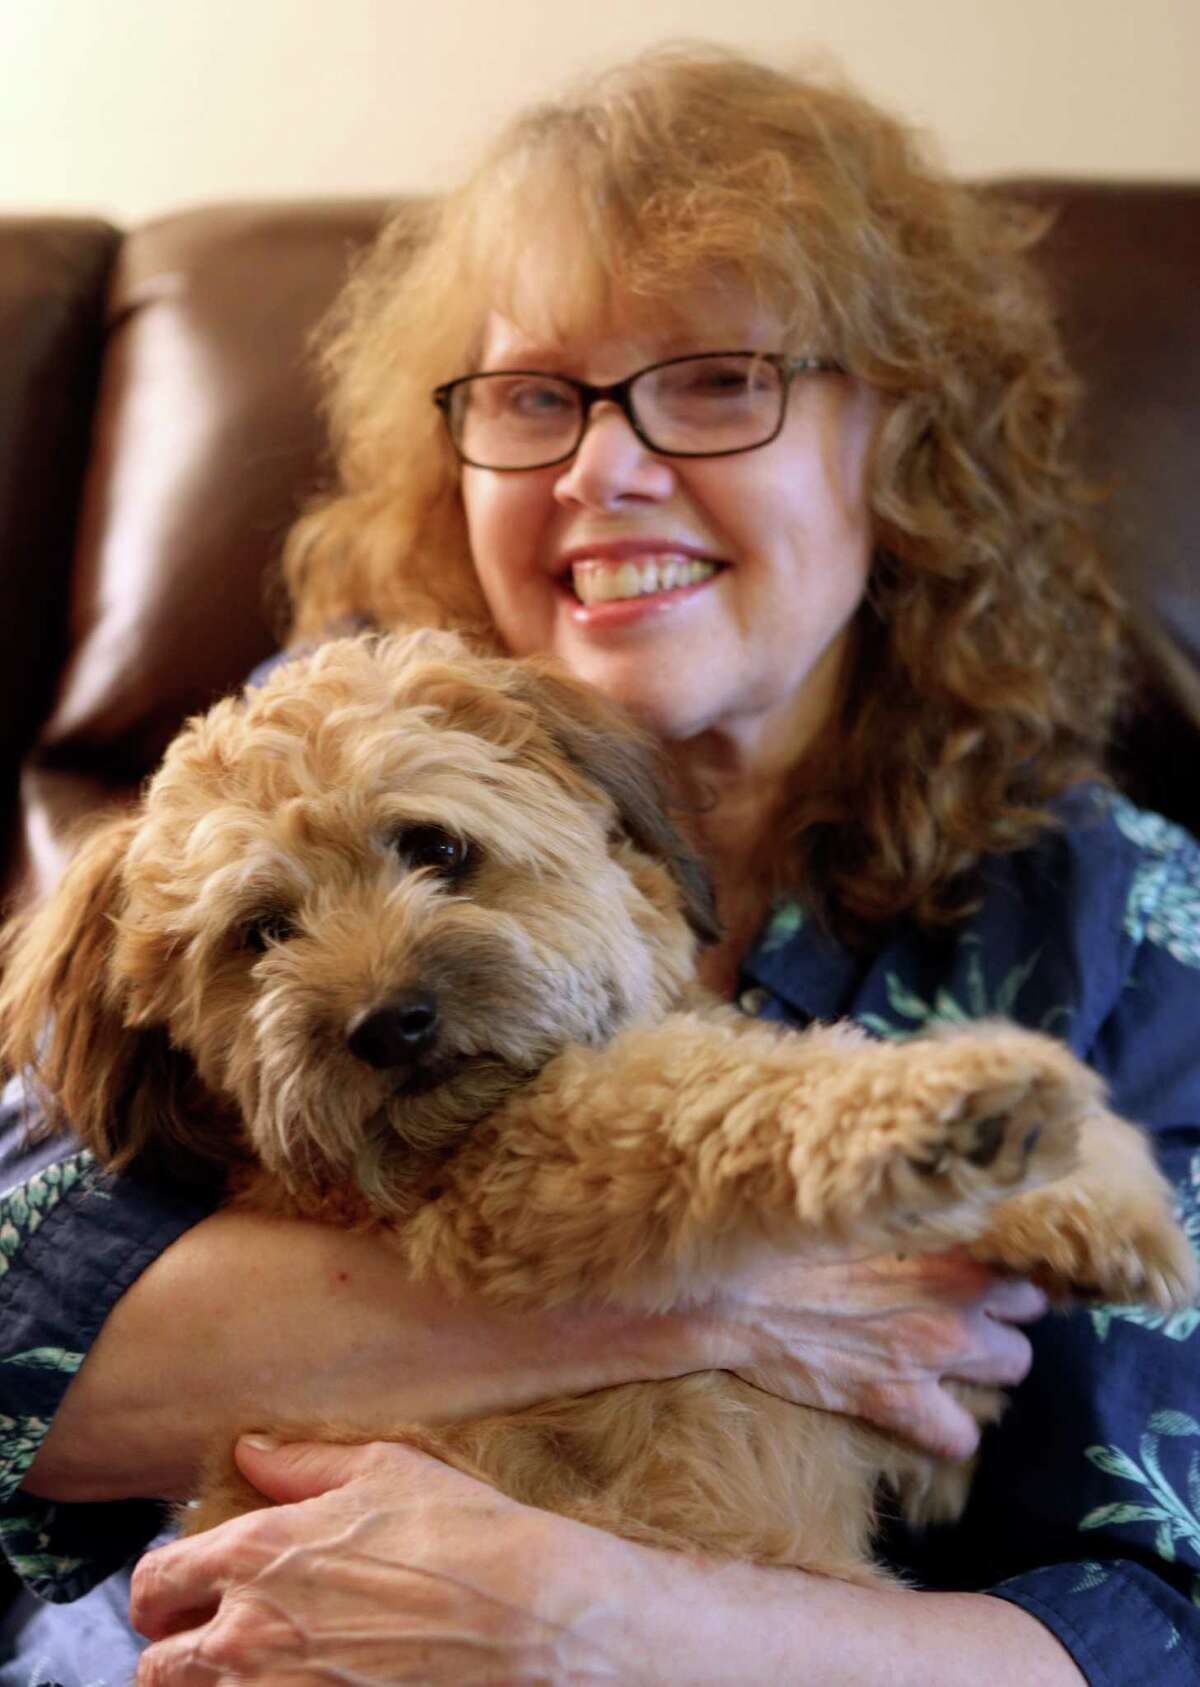 Janis Reumann often hears how she and her rescue dog Boog look alike.